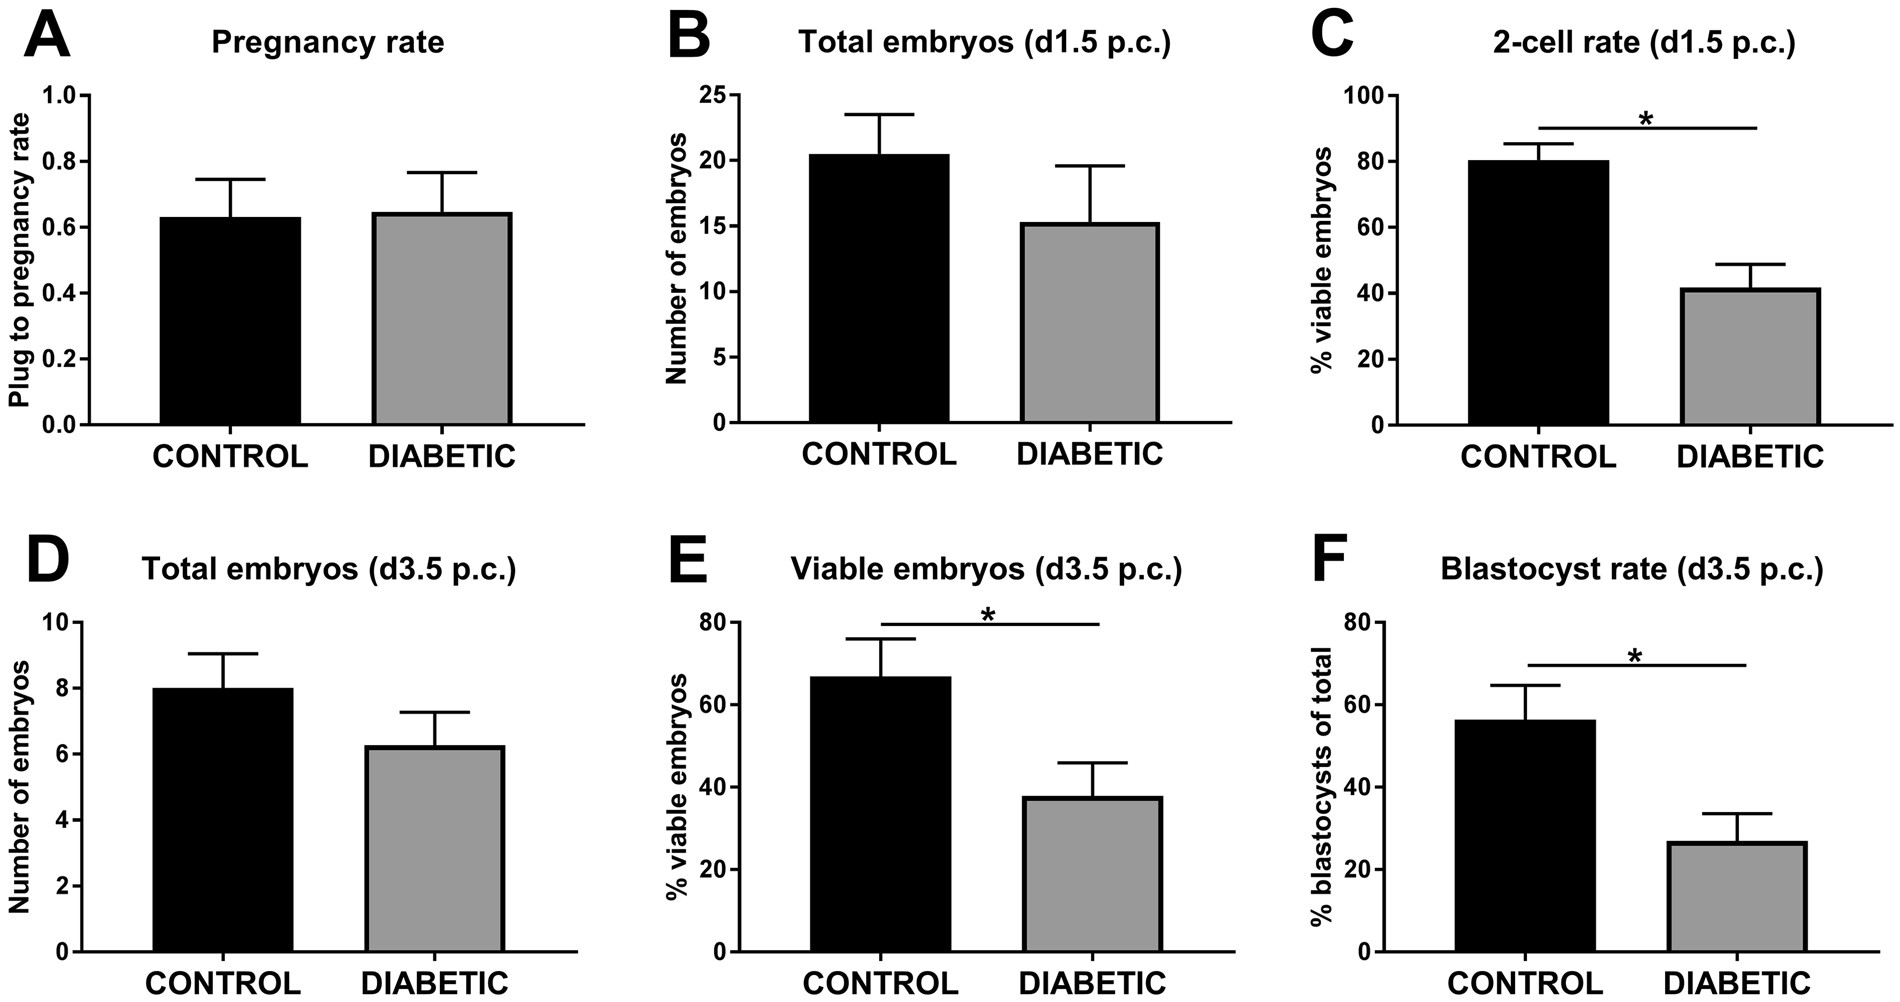 Periconception onset diabetes is associated with embryopathy